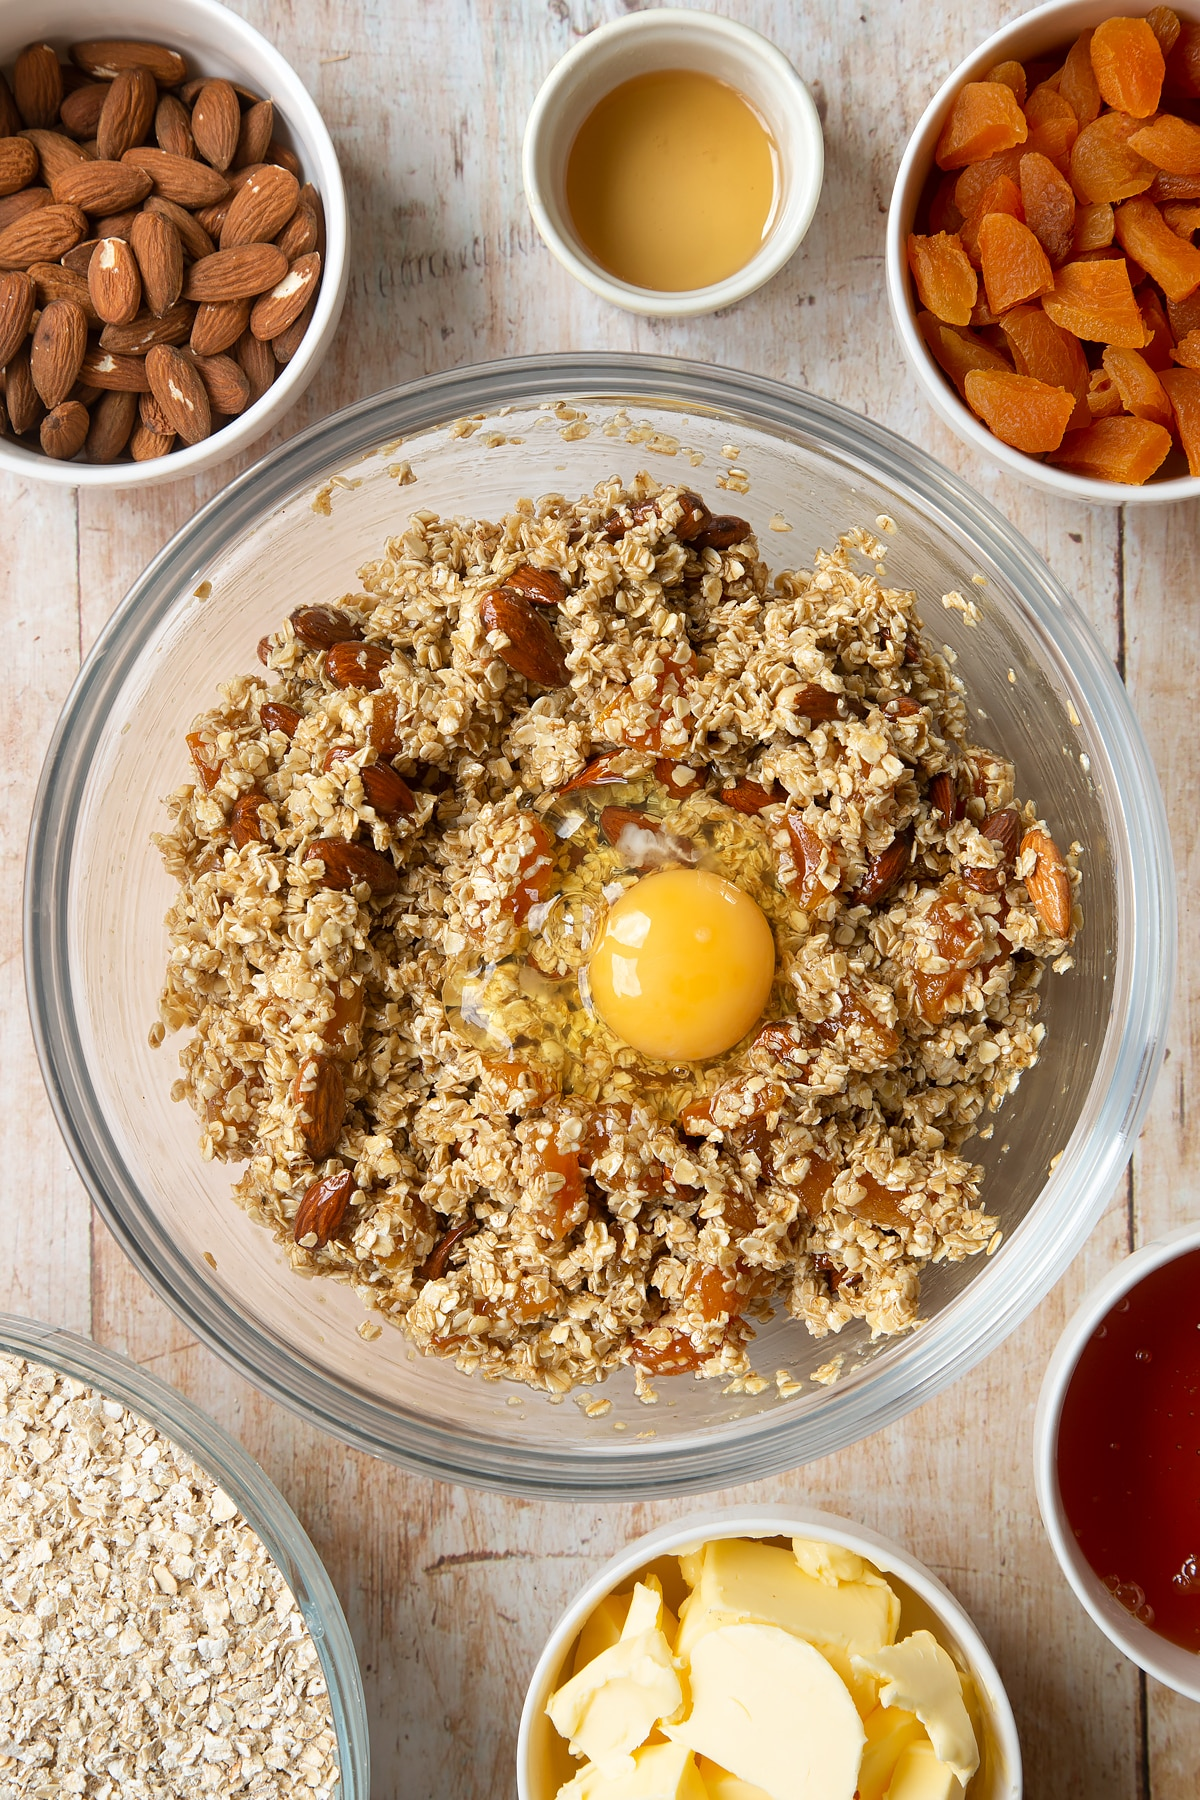 Overhead shot of oats, liquid mixture, apricots, nuts, and egg in a large clear bowl